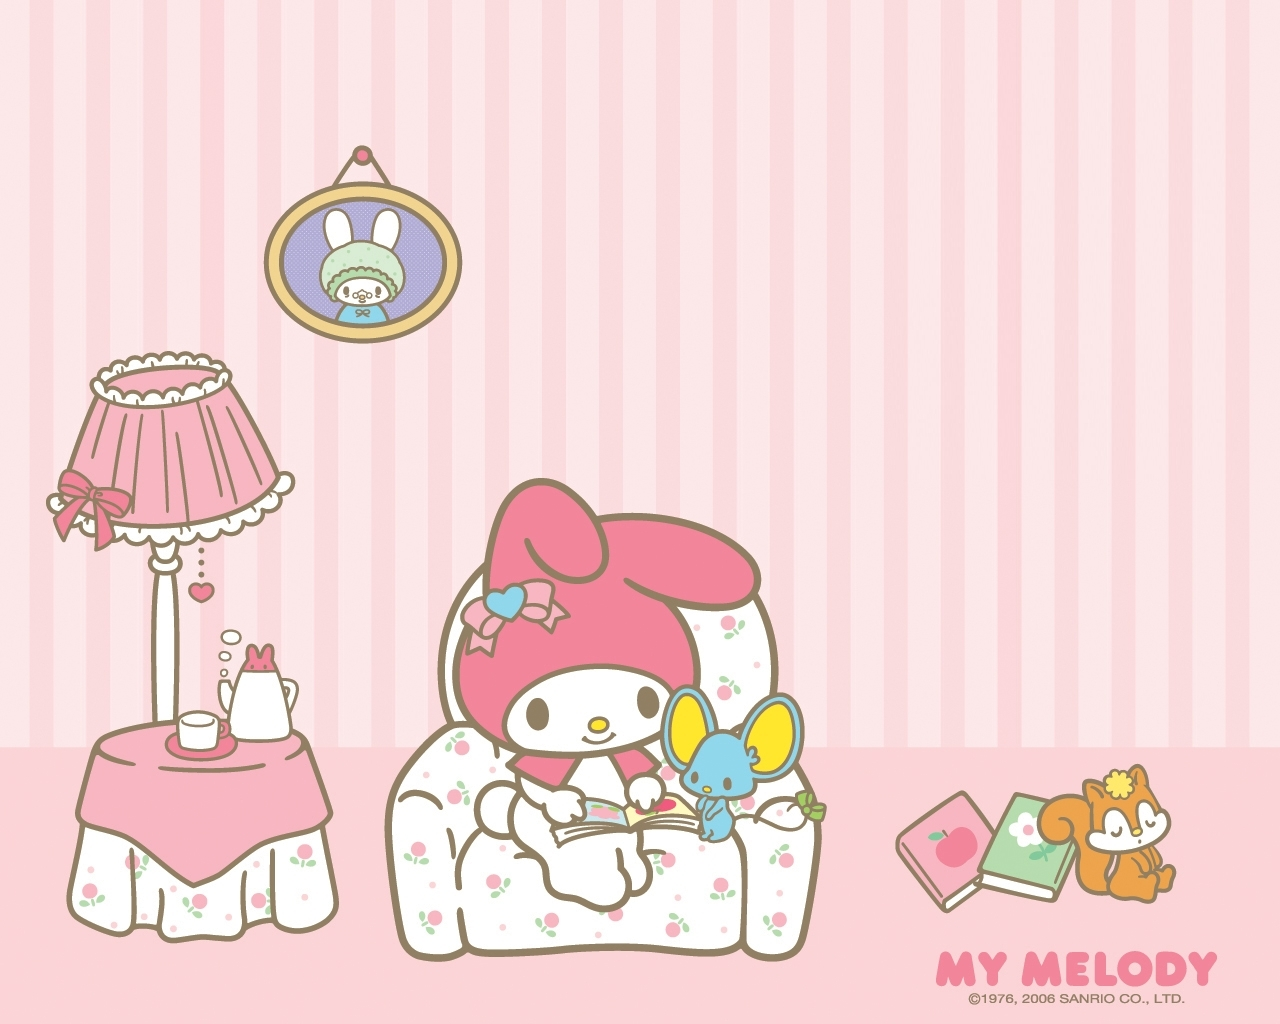 Free Download My Melody Images Picture Books Wallpaper Photos 2712837 1280x1024 For Your Desktop Mobile Tablet Explore 48 My Melody Wallpaper Kuromi Wallpaper Sanrio Wallpaper Free Download My Melody Wallpaper Lock Screen